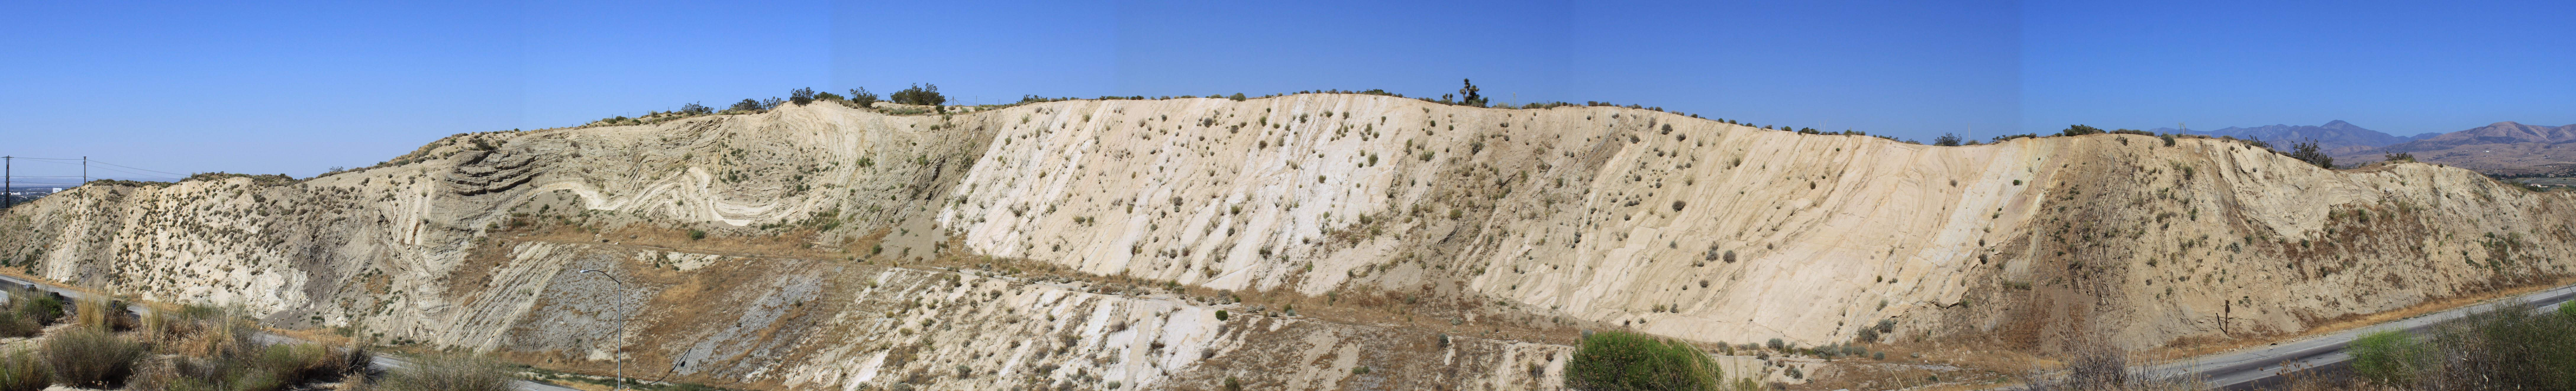 san-andreas-fault-road-cut-palmdale-stitch